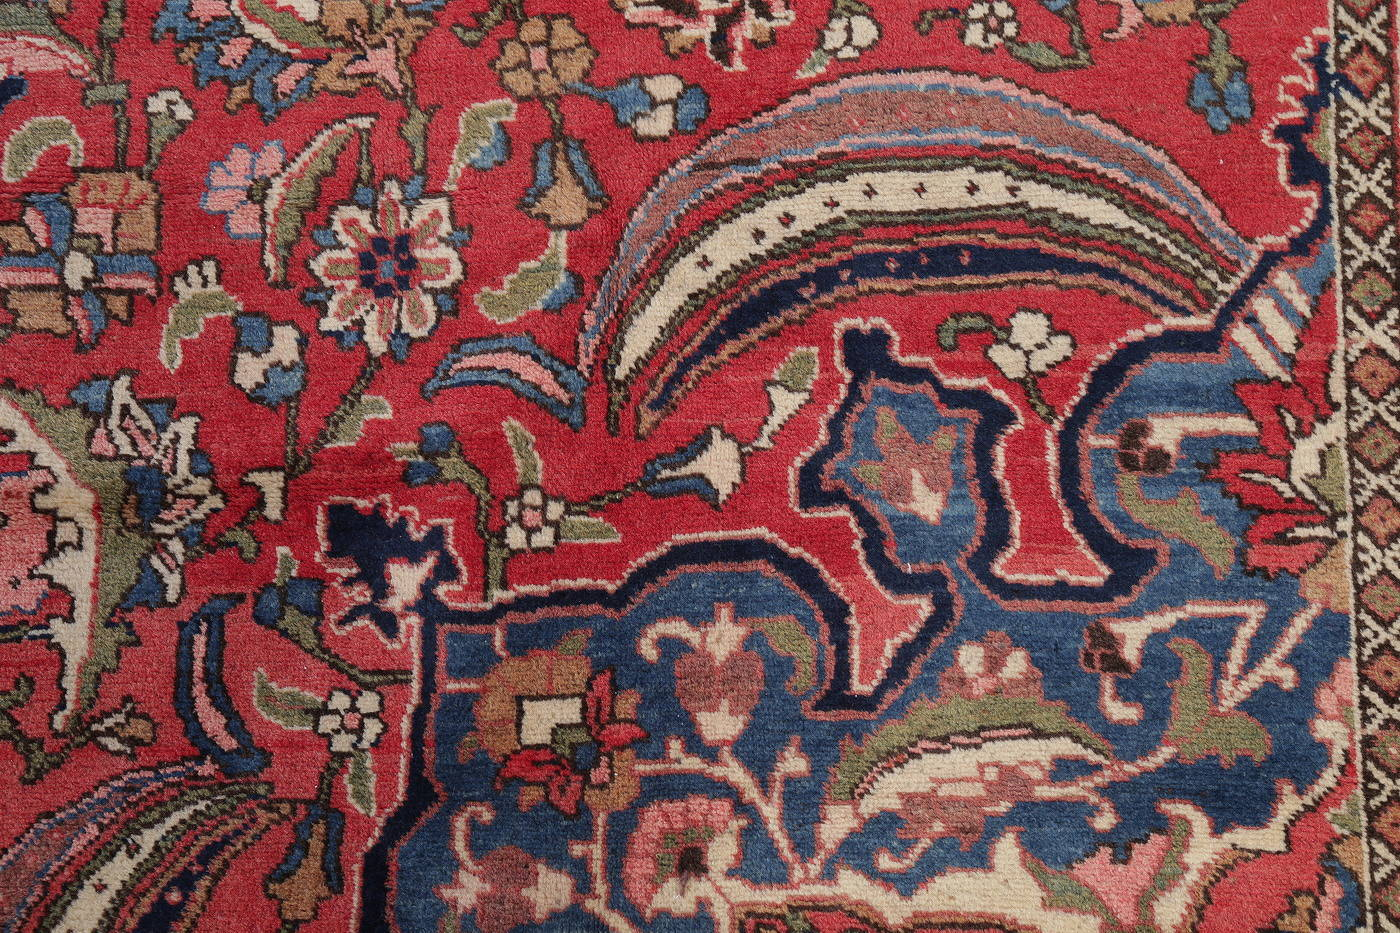 Antique Vegetable Dye Bakhtiari Persian Area Rug 12x14 image 12